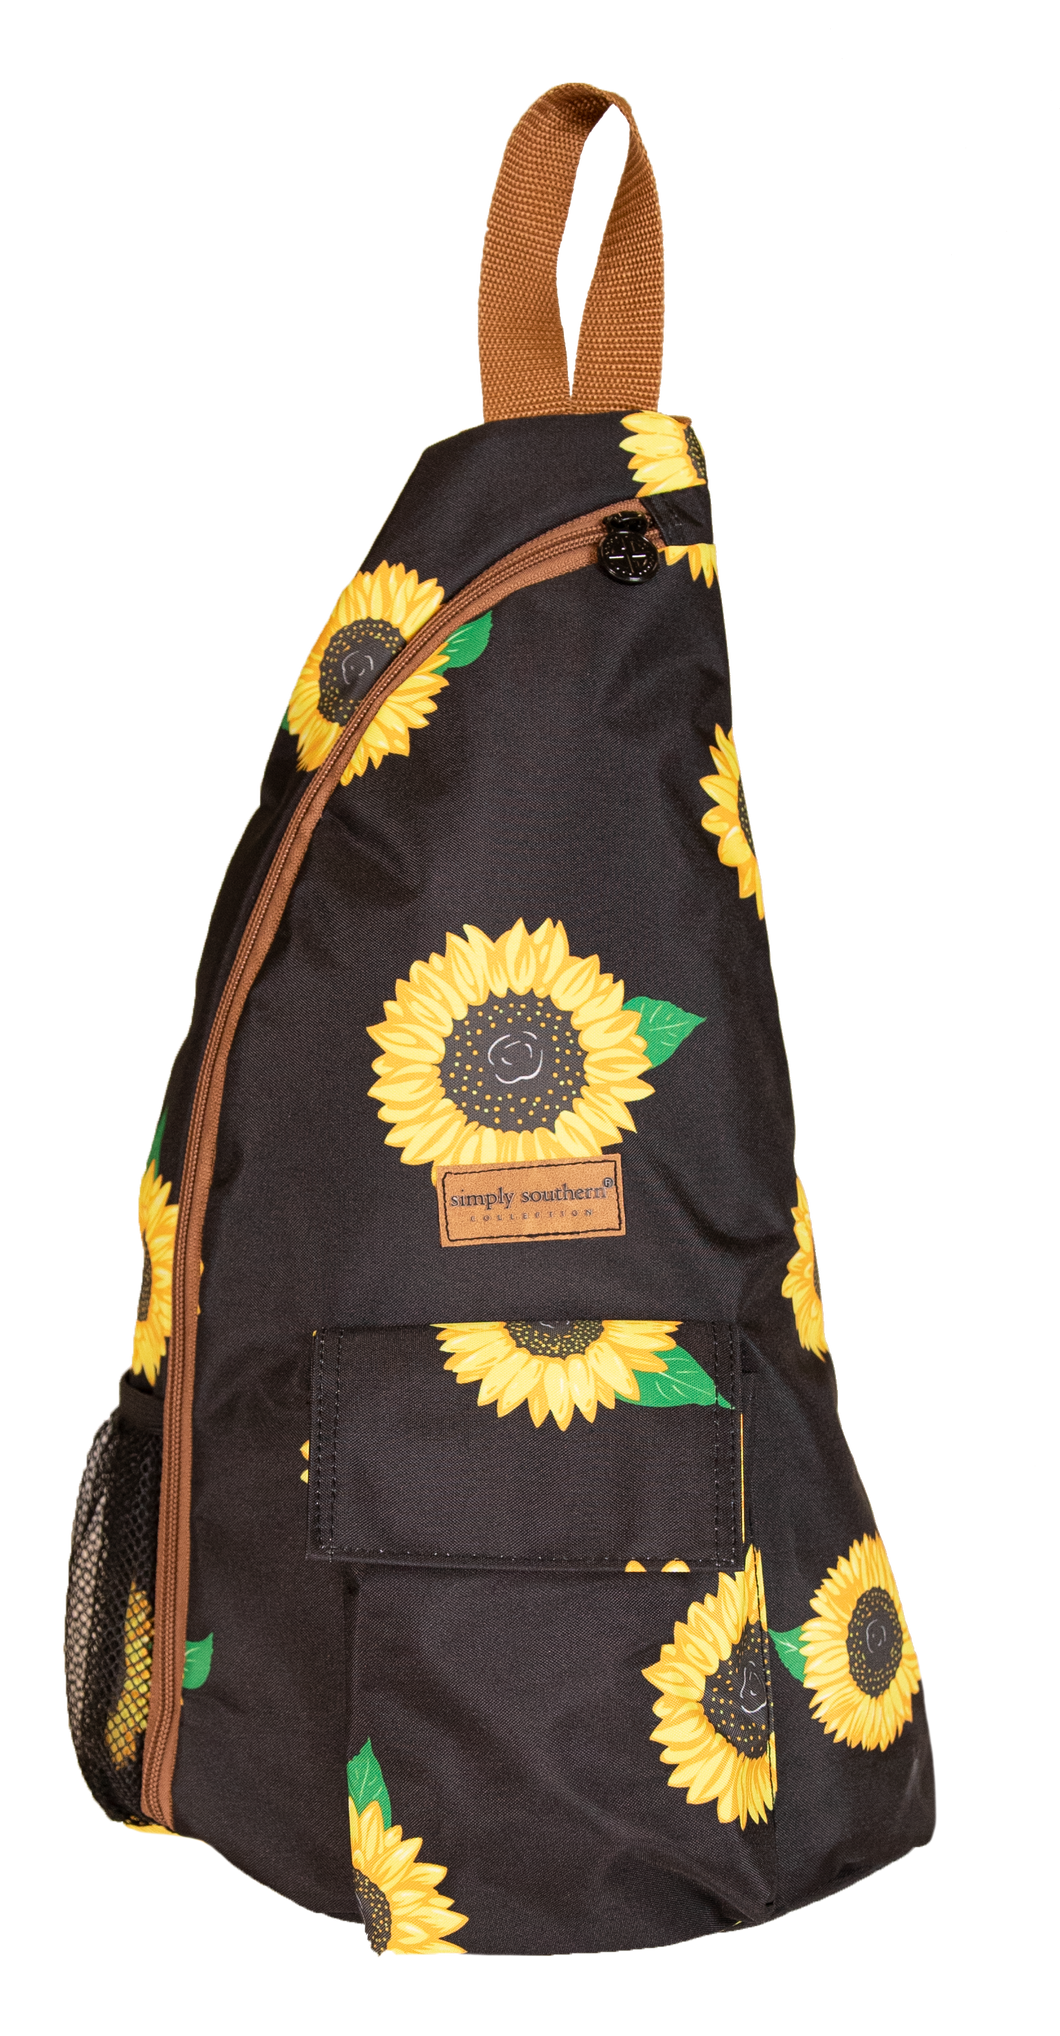 Sling Sunflower Simply Southern Bag